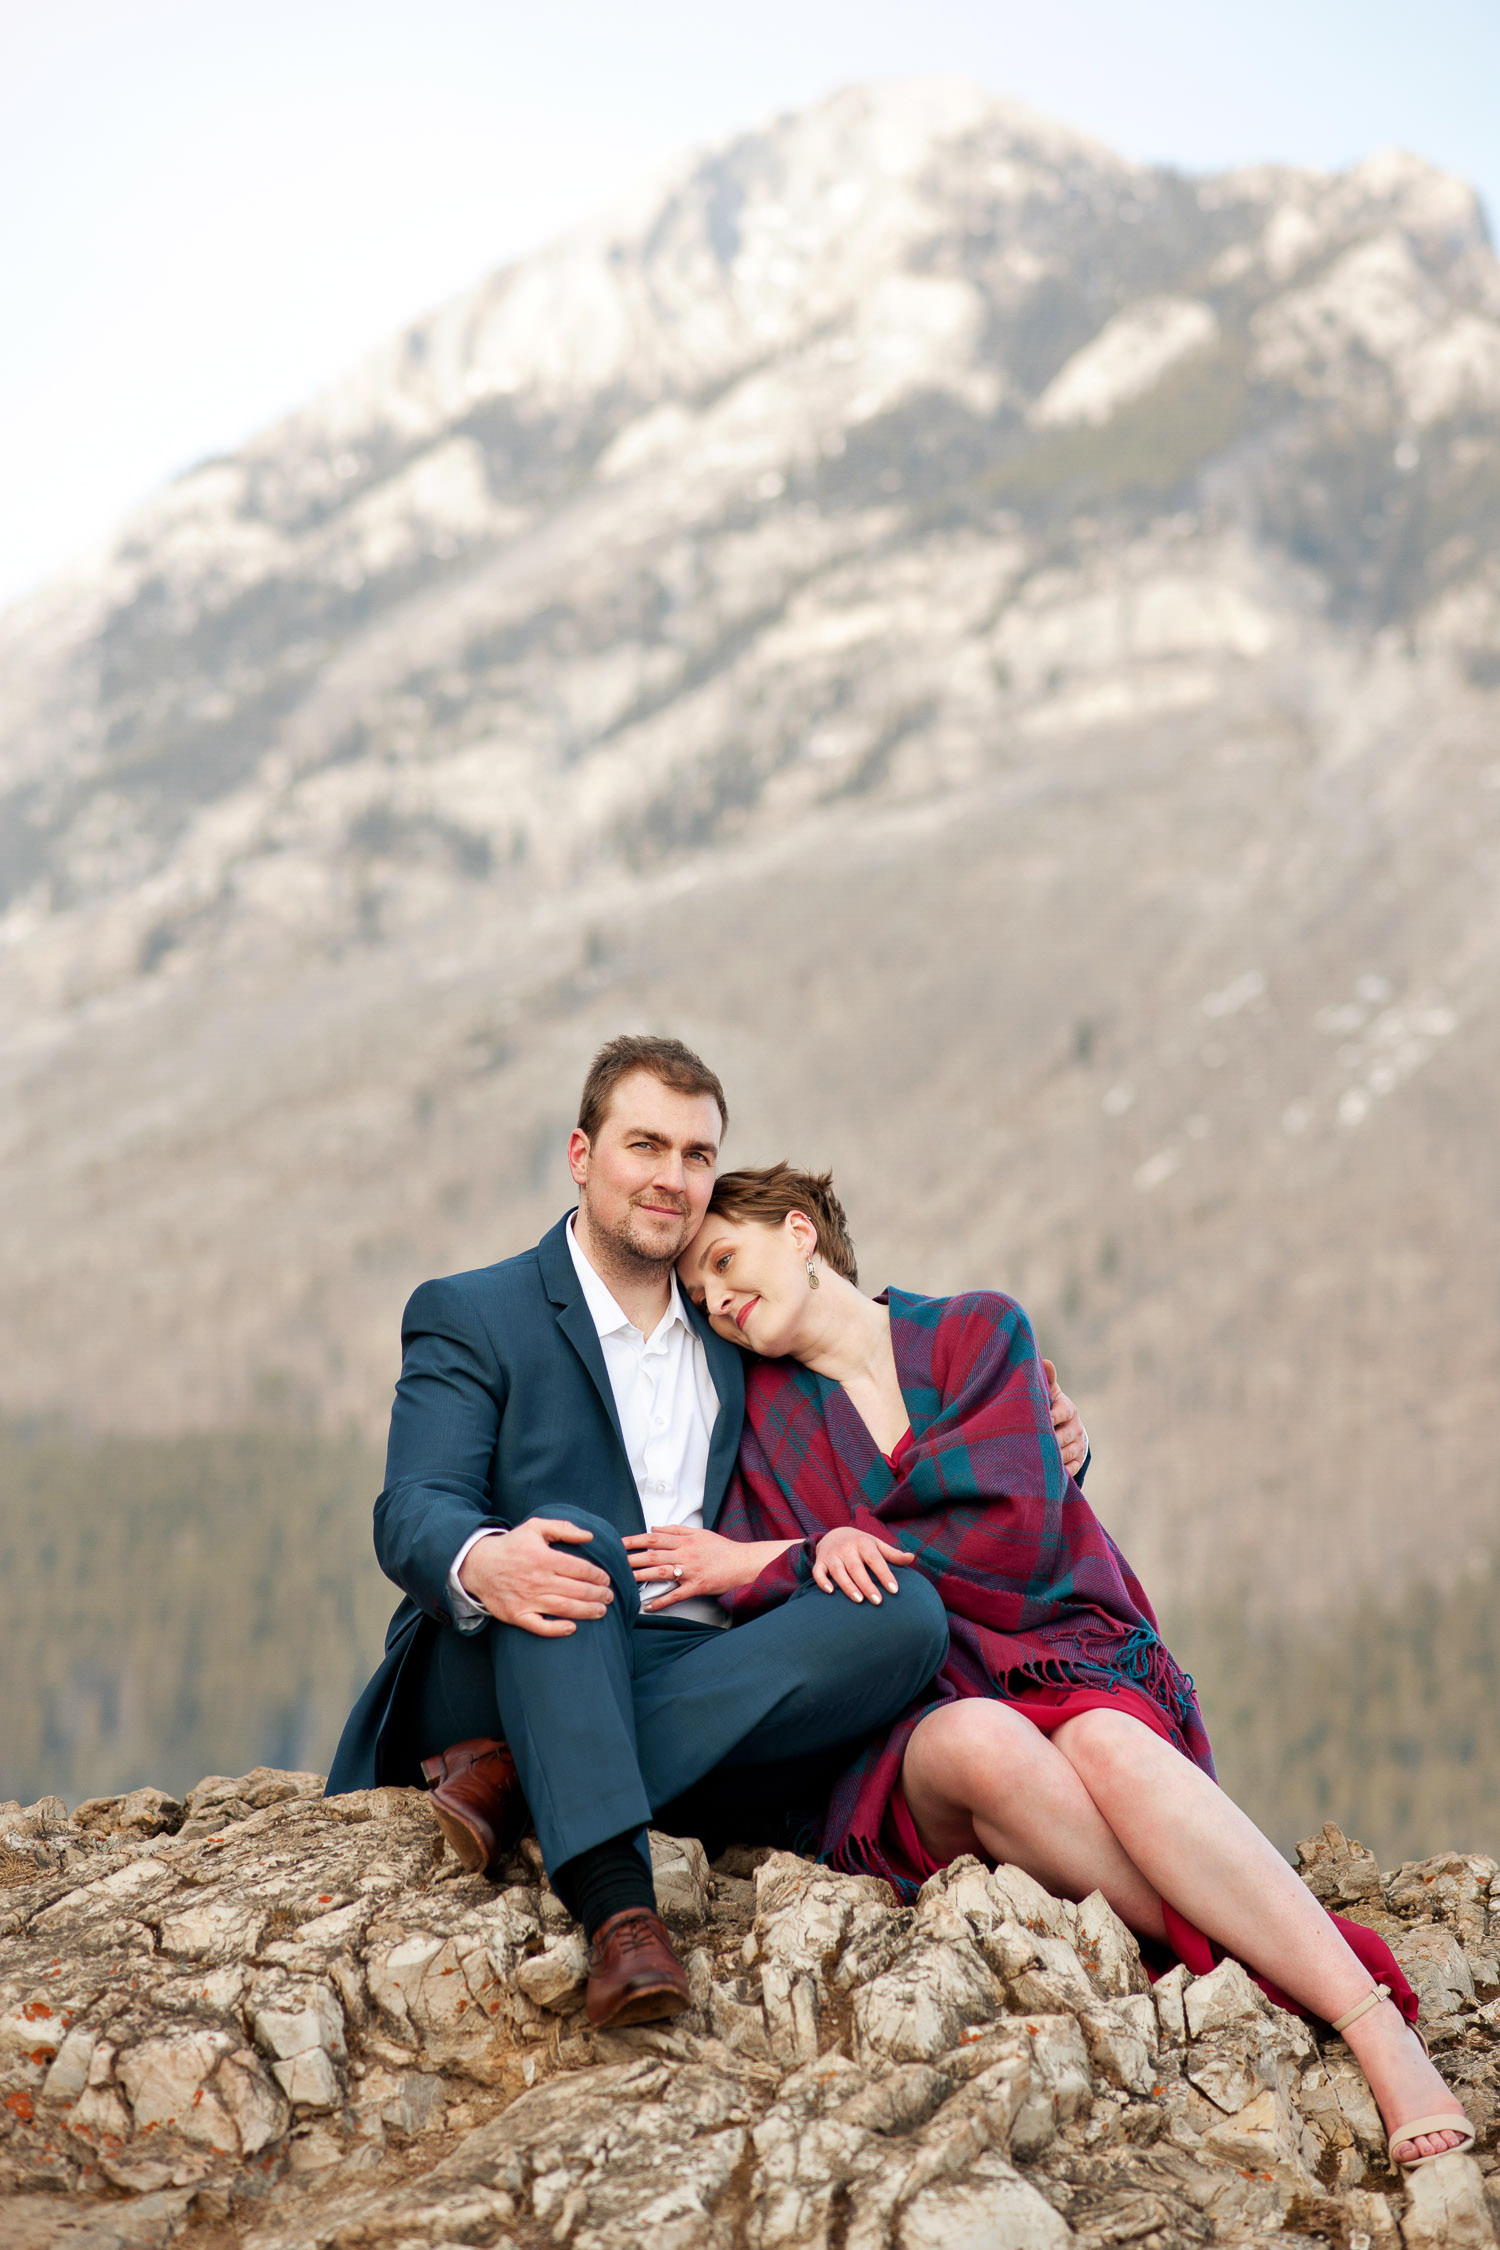 Roseanne and Ben at Lake Minnewanka Calgary wedding photographer Tara Whittaker